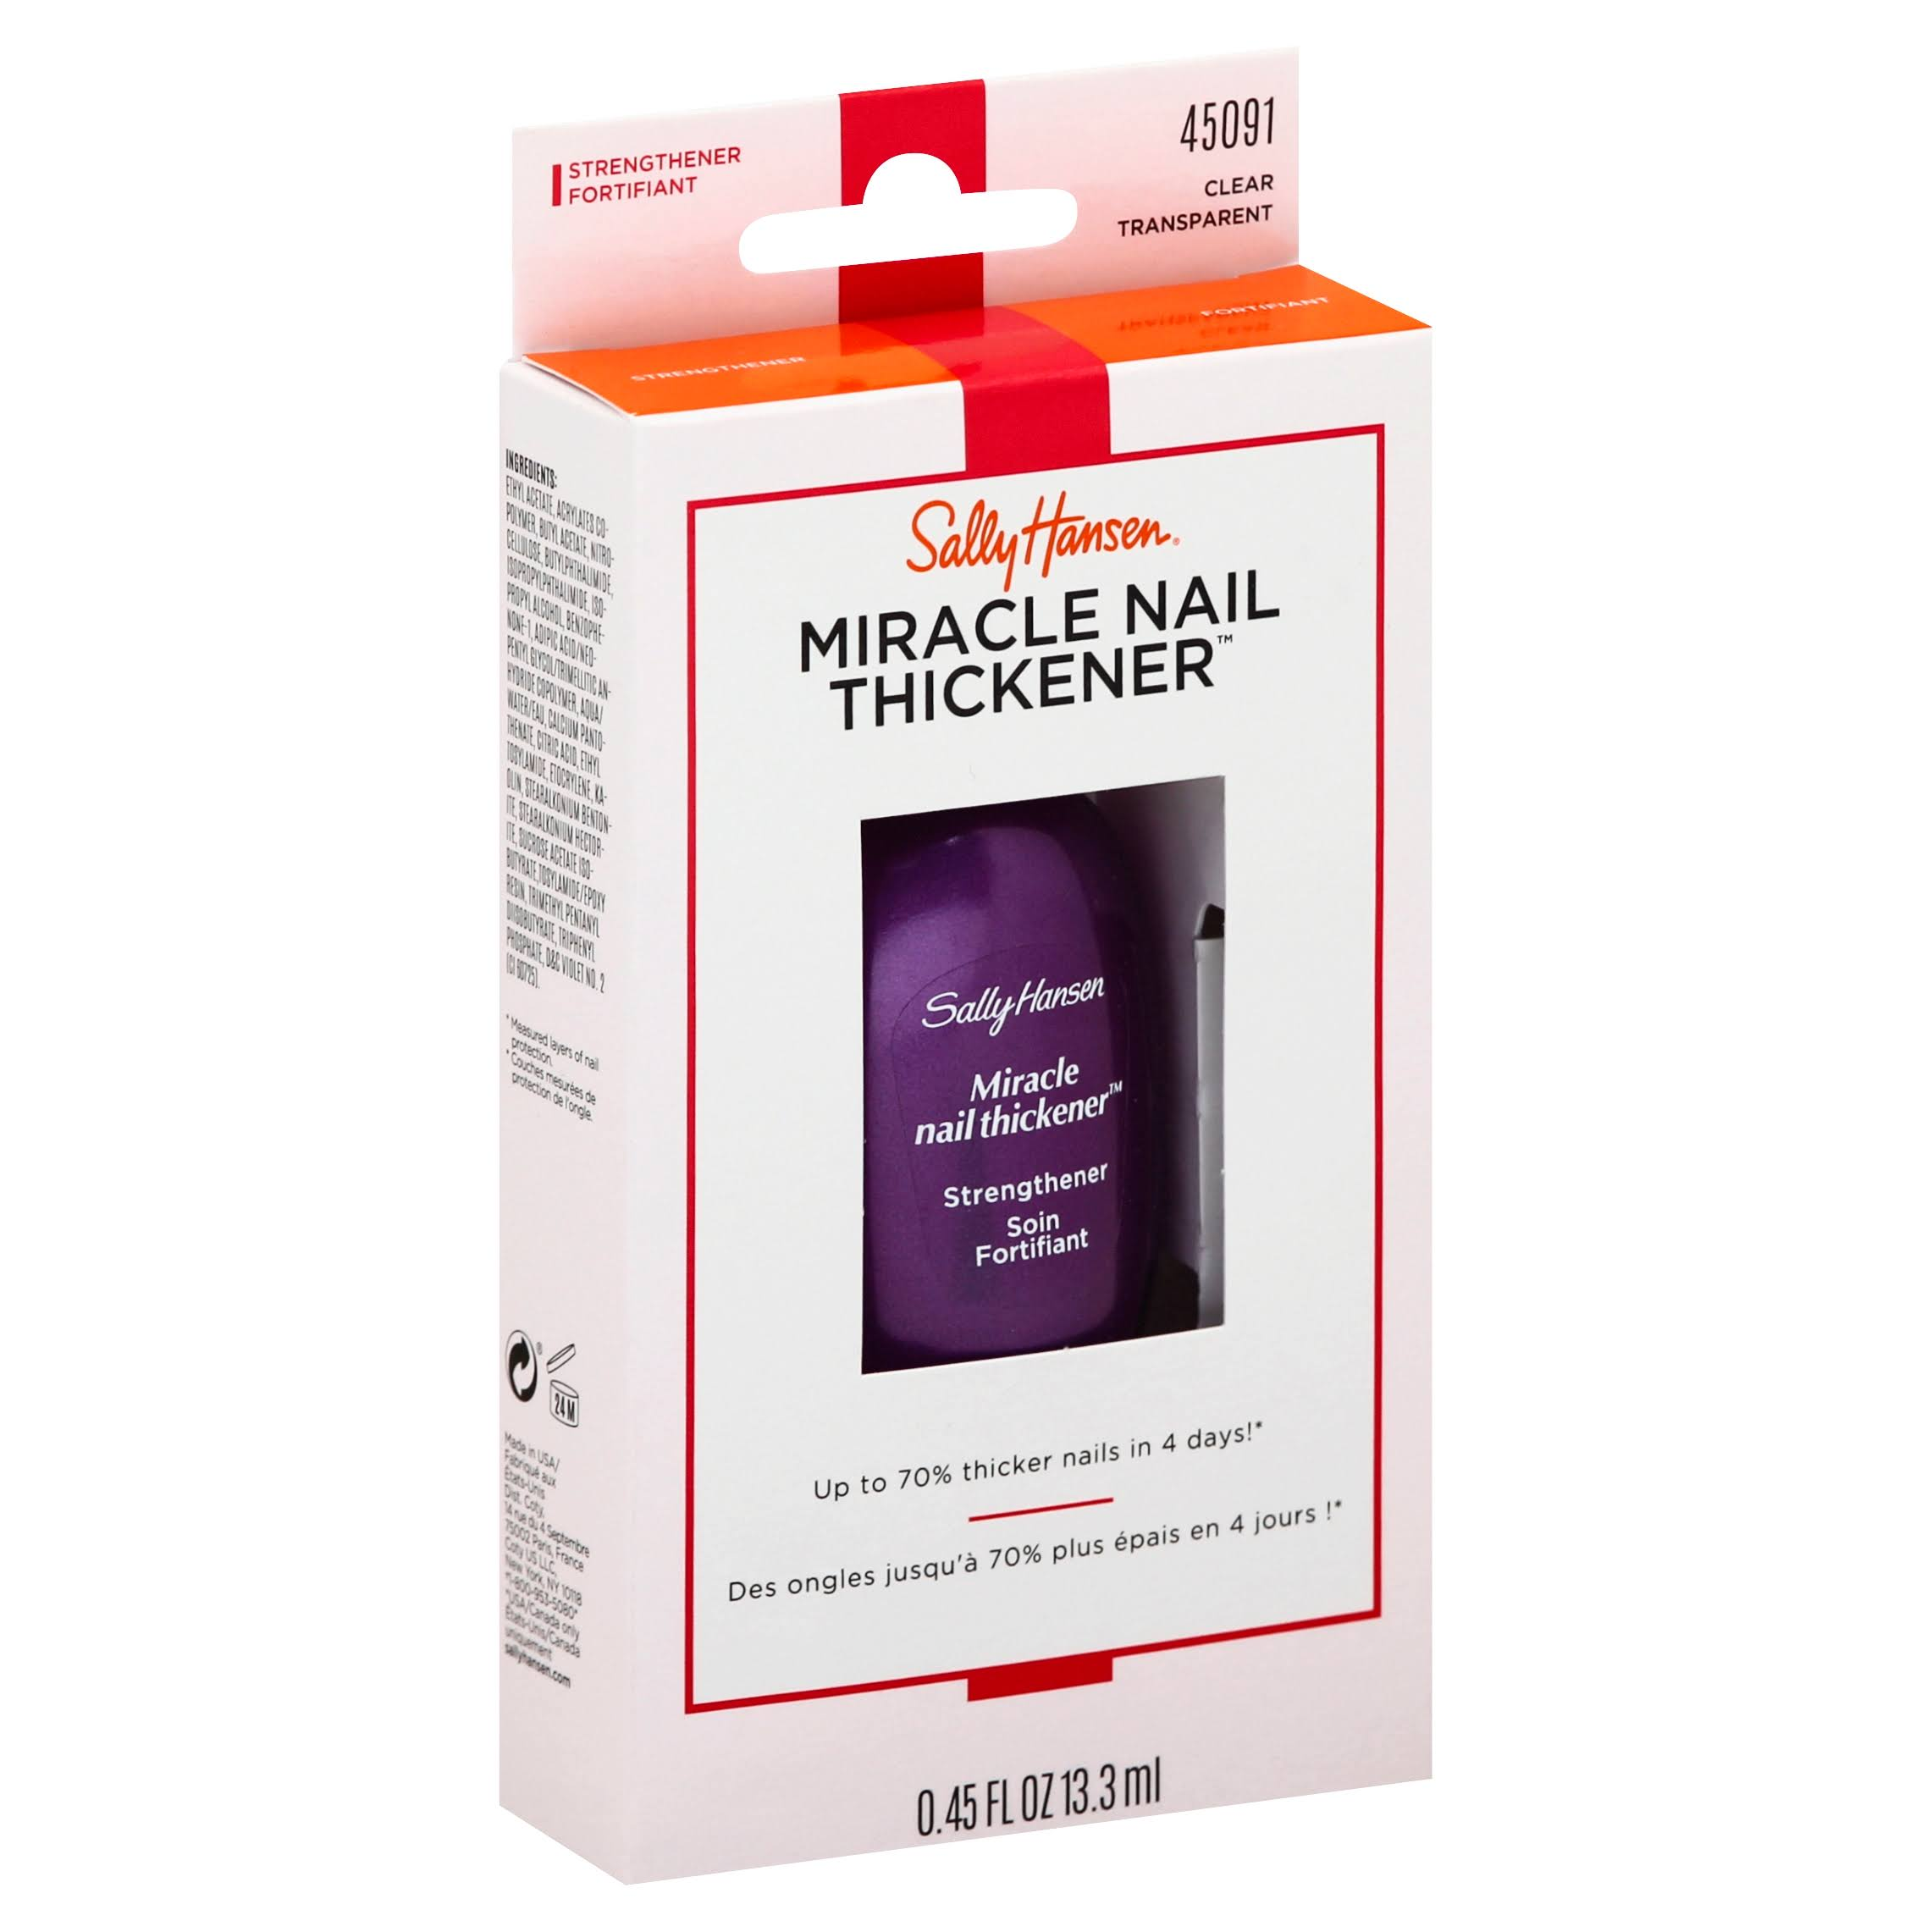 Sally Hansen Miracle Nail Thickener - Clear, 0.45oz